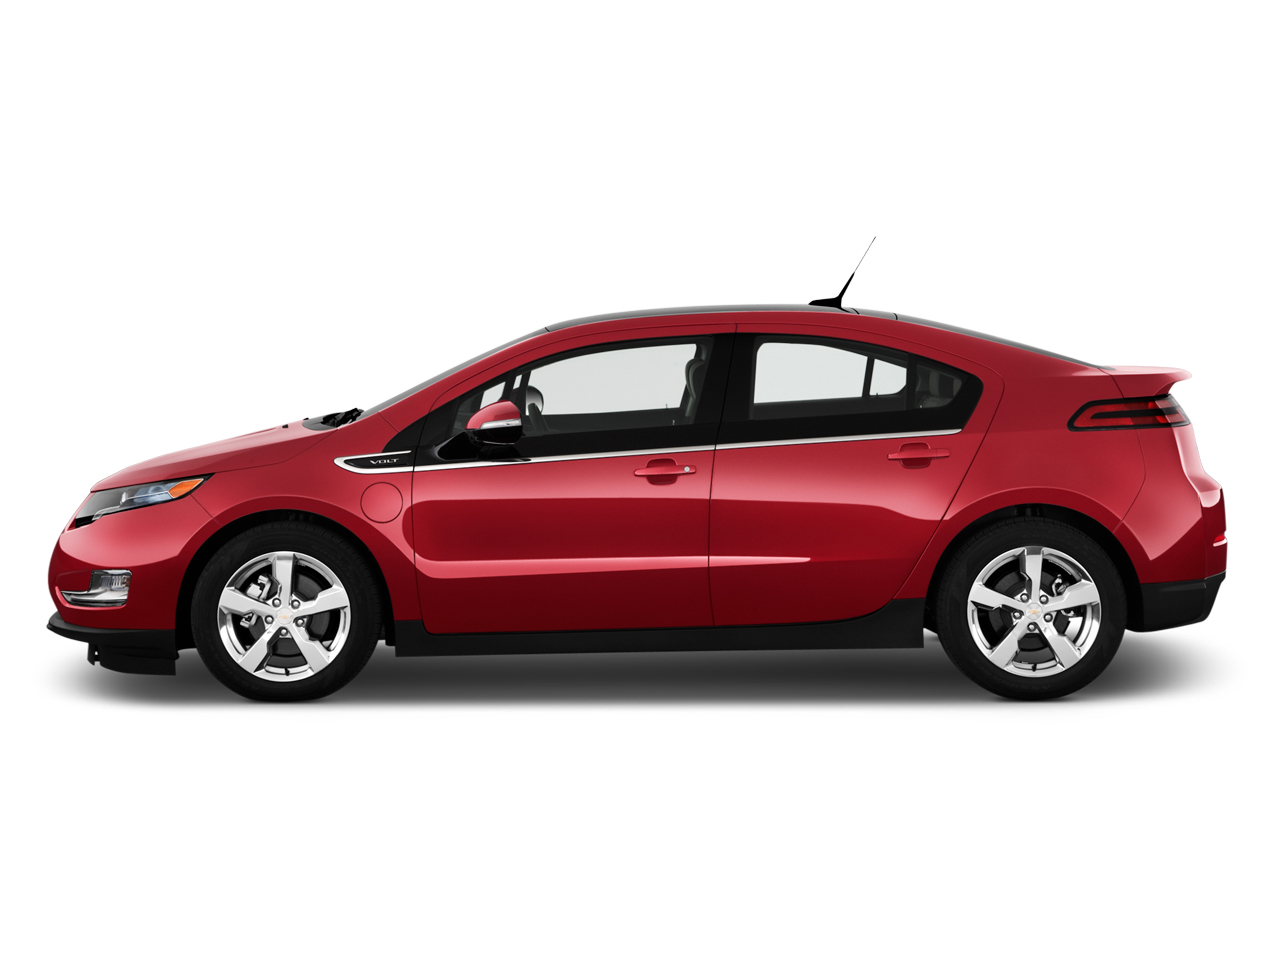 2013 chevrolet volt chevy styling review the car connection. Black Bedroom Furniture Sets. Home Design Ideas